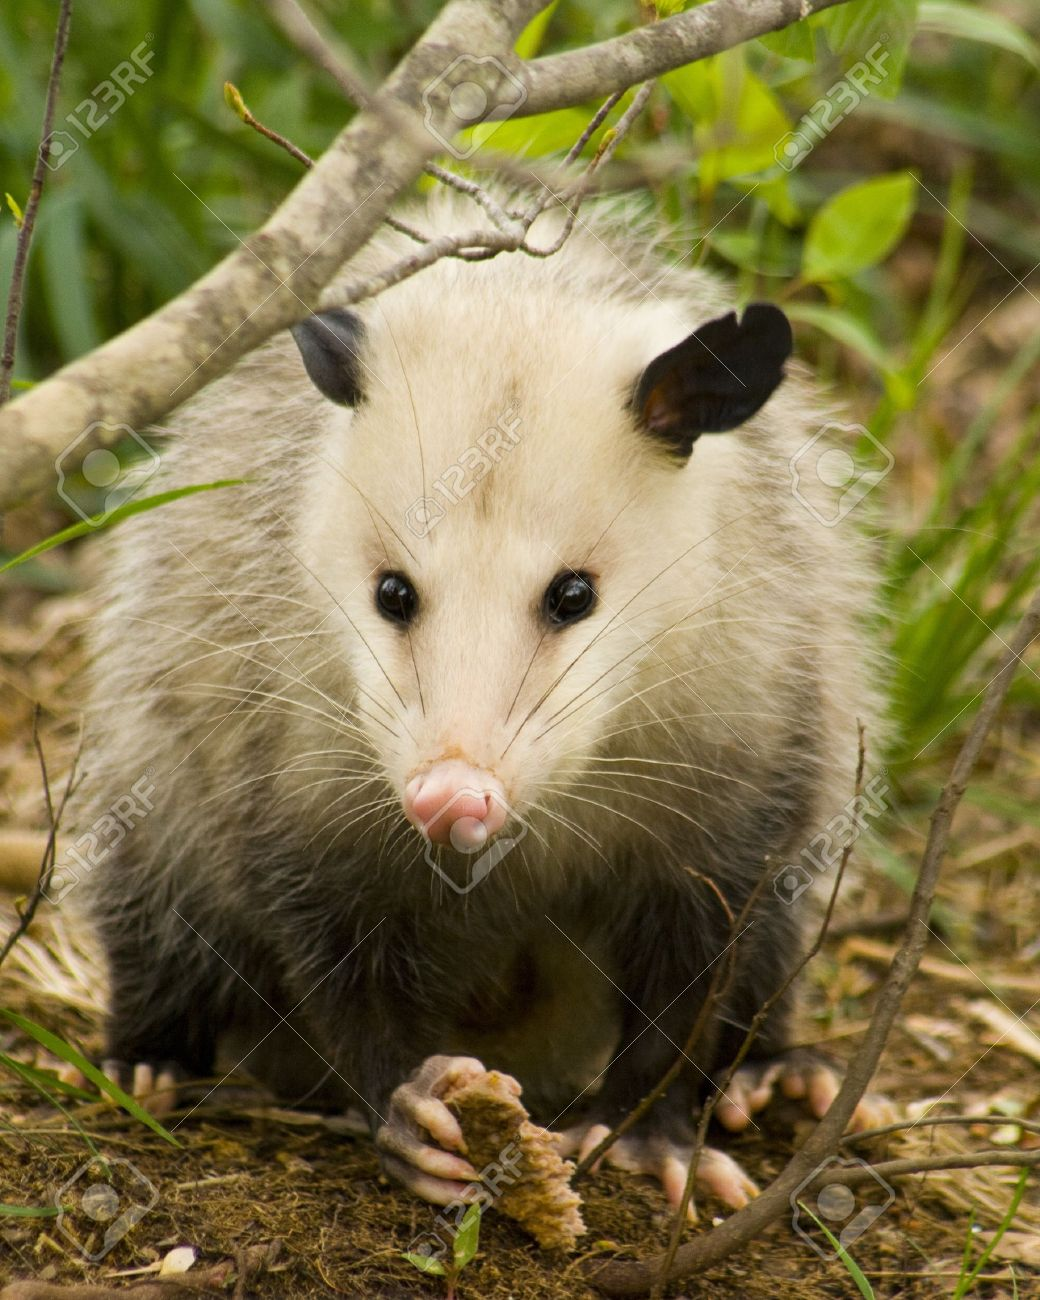 possum images u0026 stock pictures royalty free possum photos and